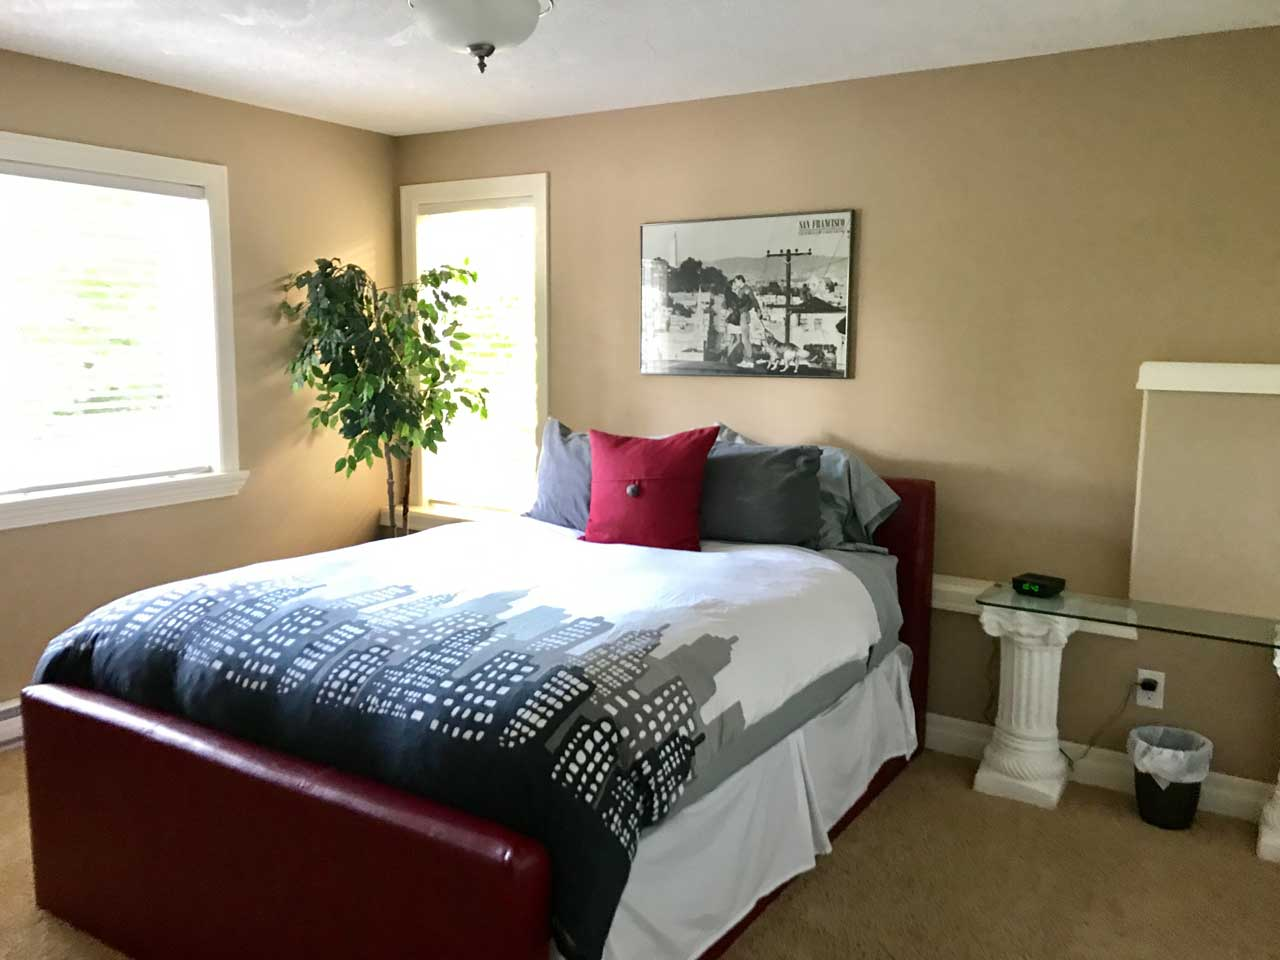 Lakeside suite bedroom with art on wall and fresh clean linens on bed